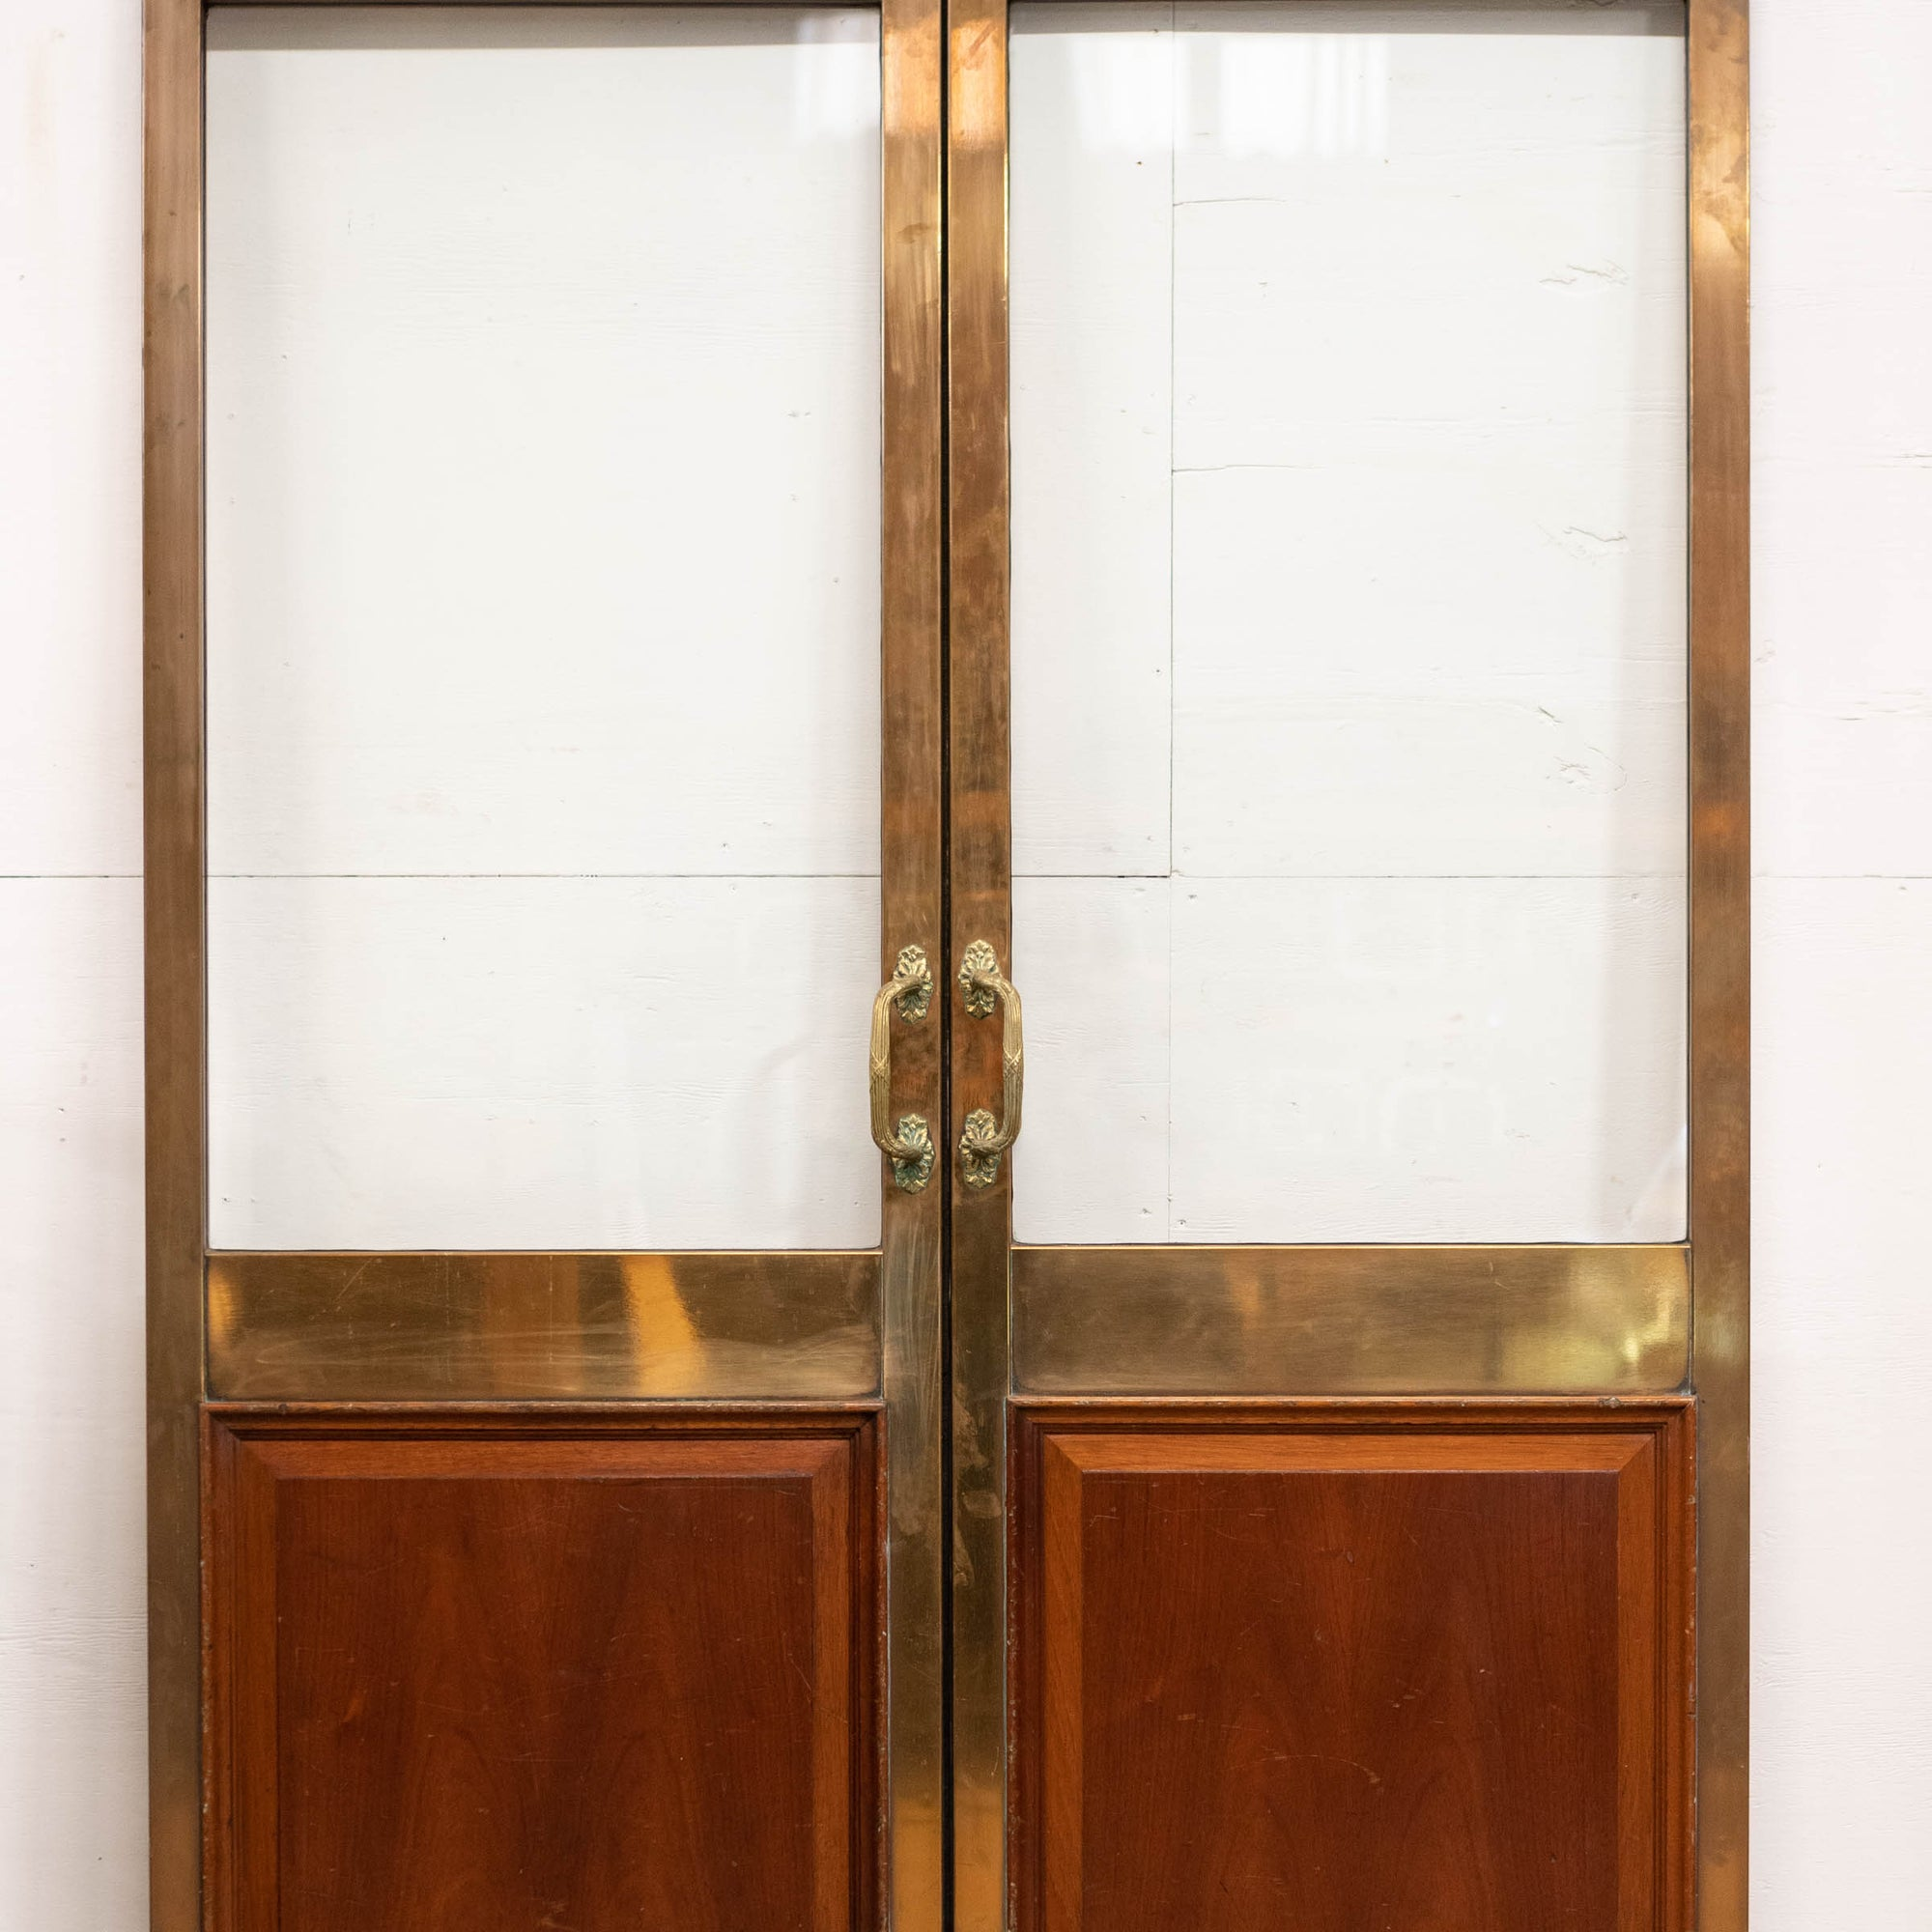 Antique Brass and Mahogany Glazed Dividing doorsDoors | The Architectural Forum